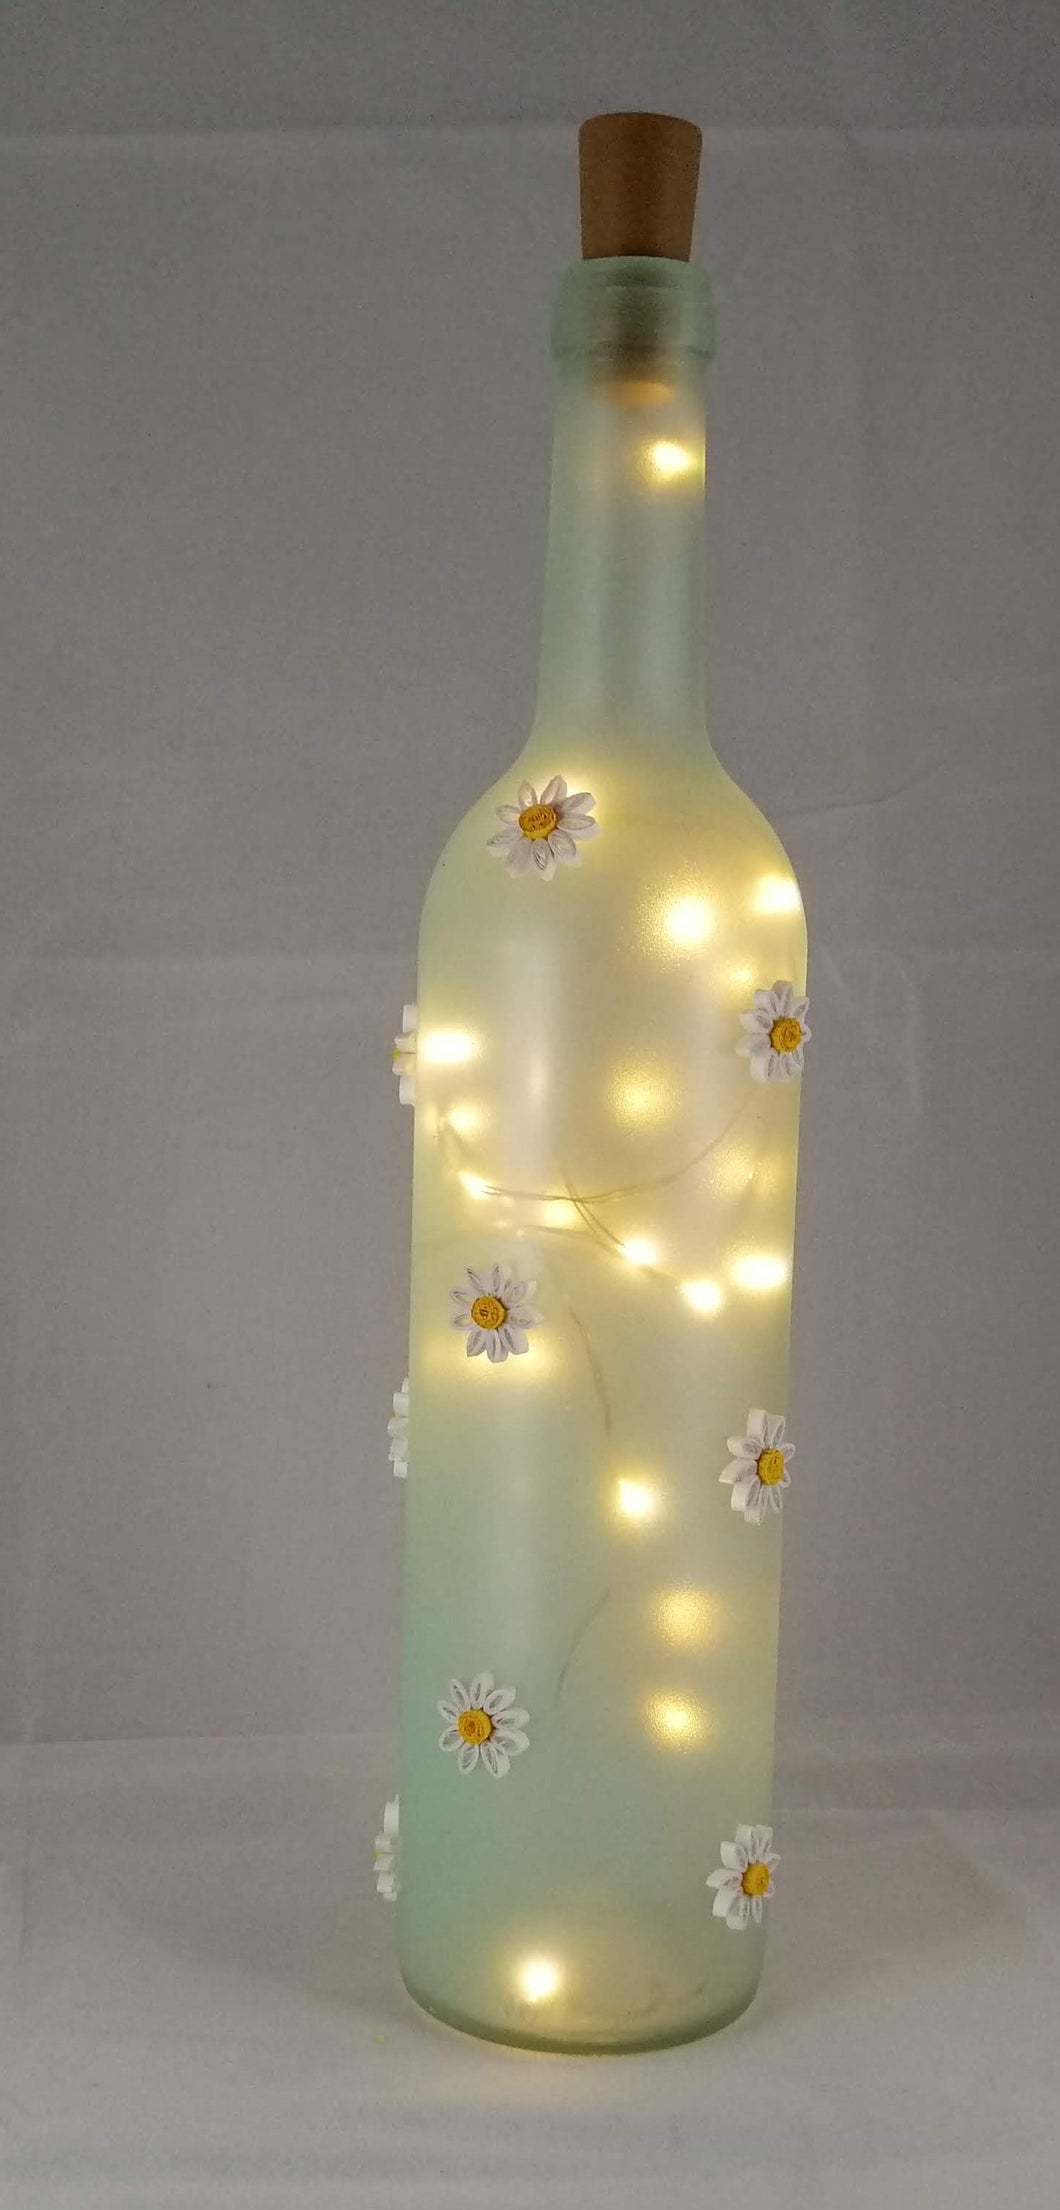 Glass bottle with daisies and lights